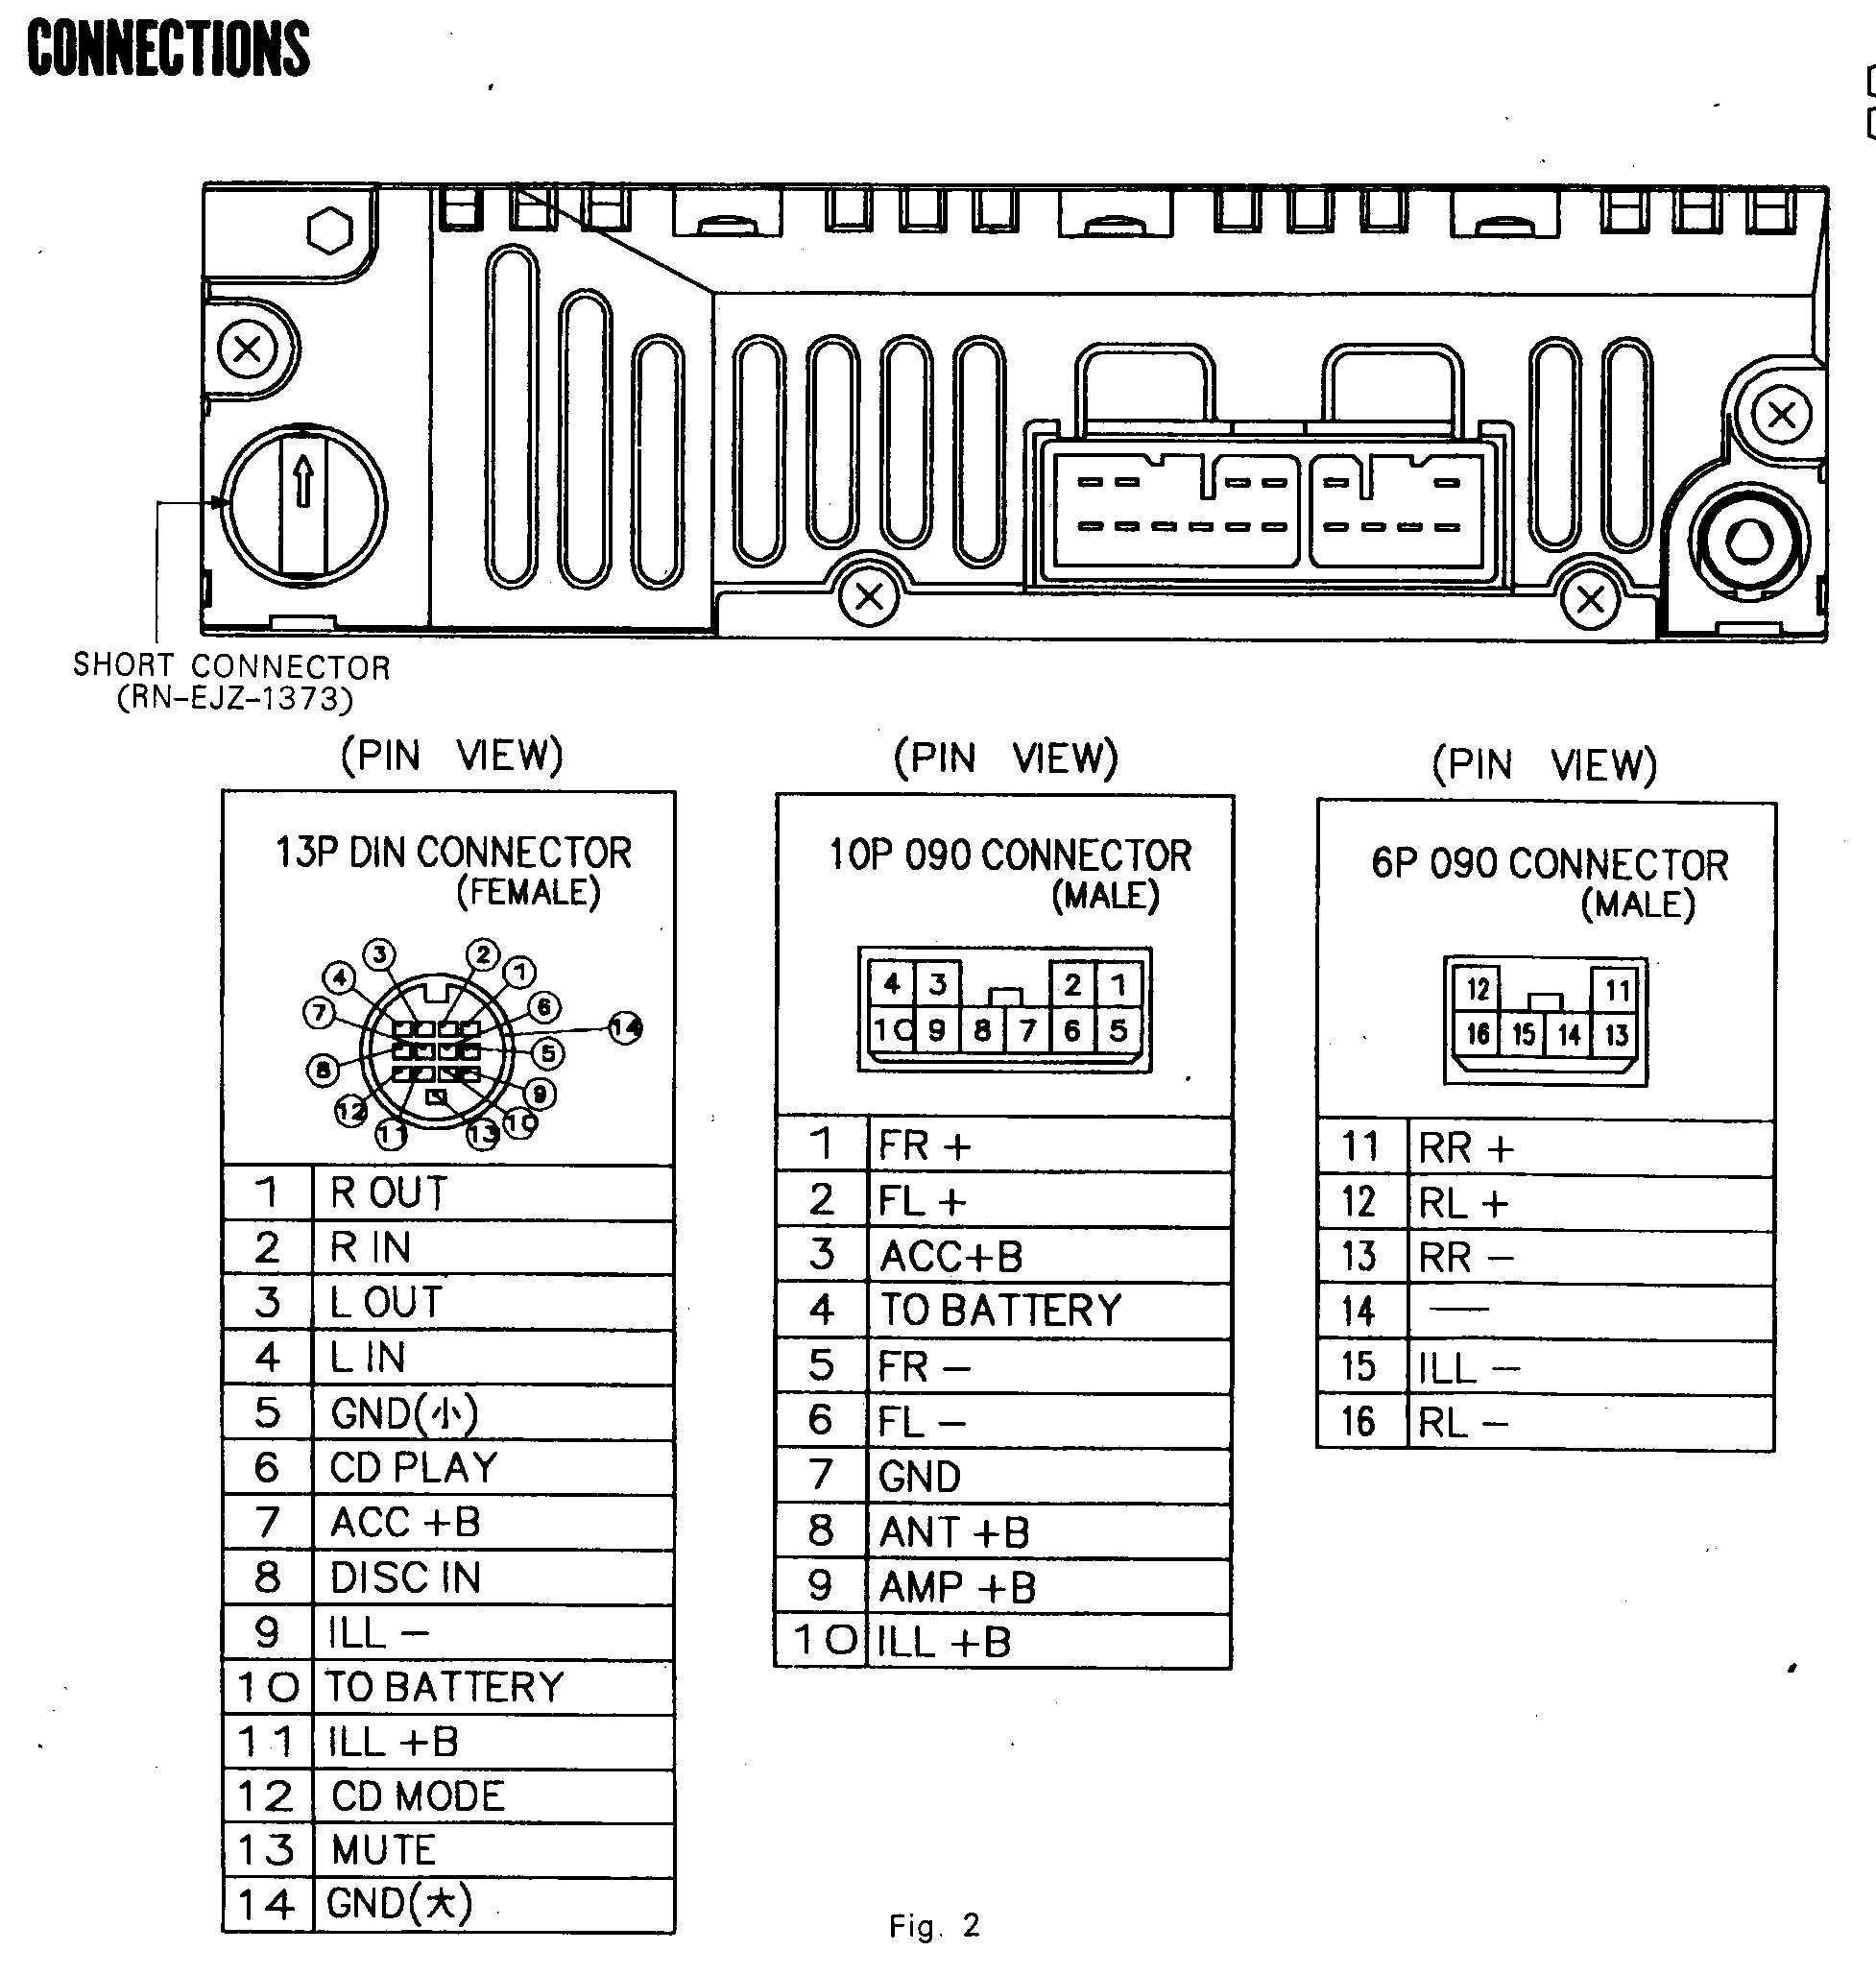 2015 toyota tacoma stereo wiring guide 1024 1022 diagram wiring radio wiring diagram toyota camry 1999 stereo wiring diagram toyota [ 1954 x 2057 Pixel ]